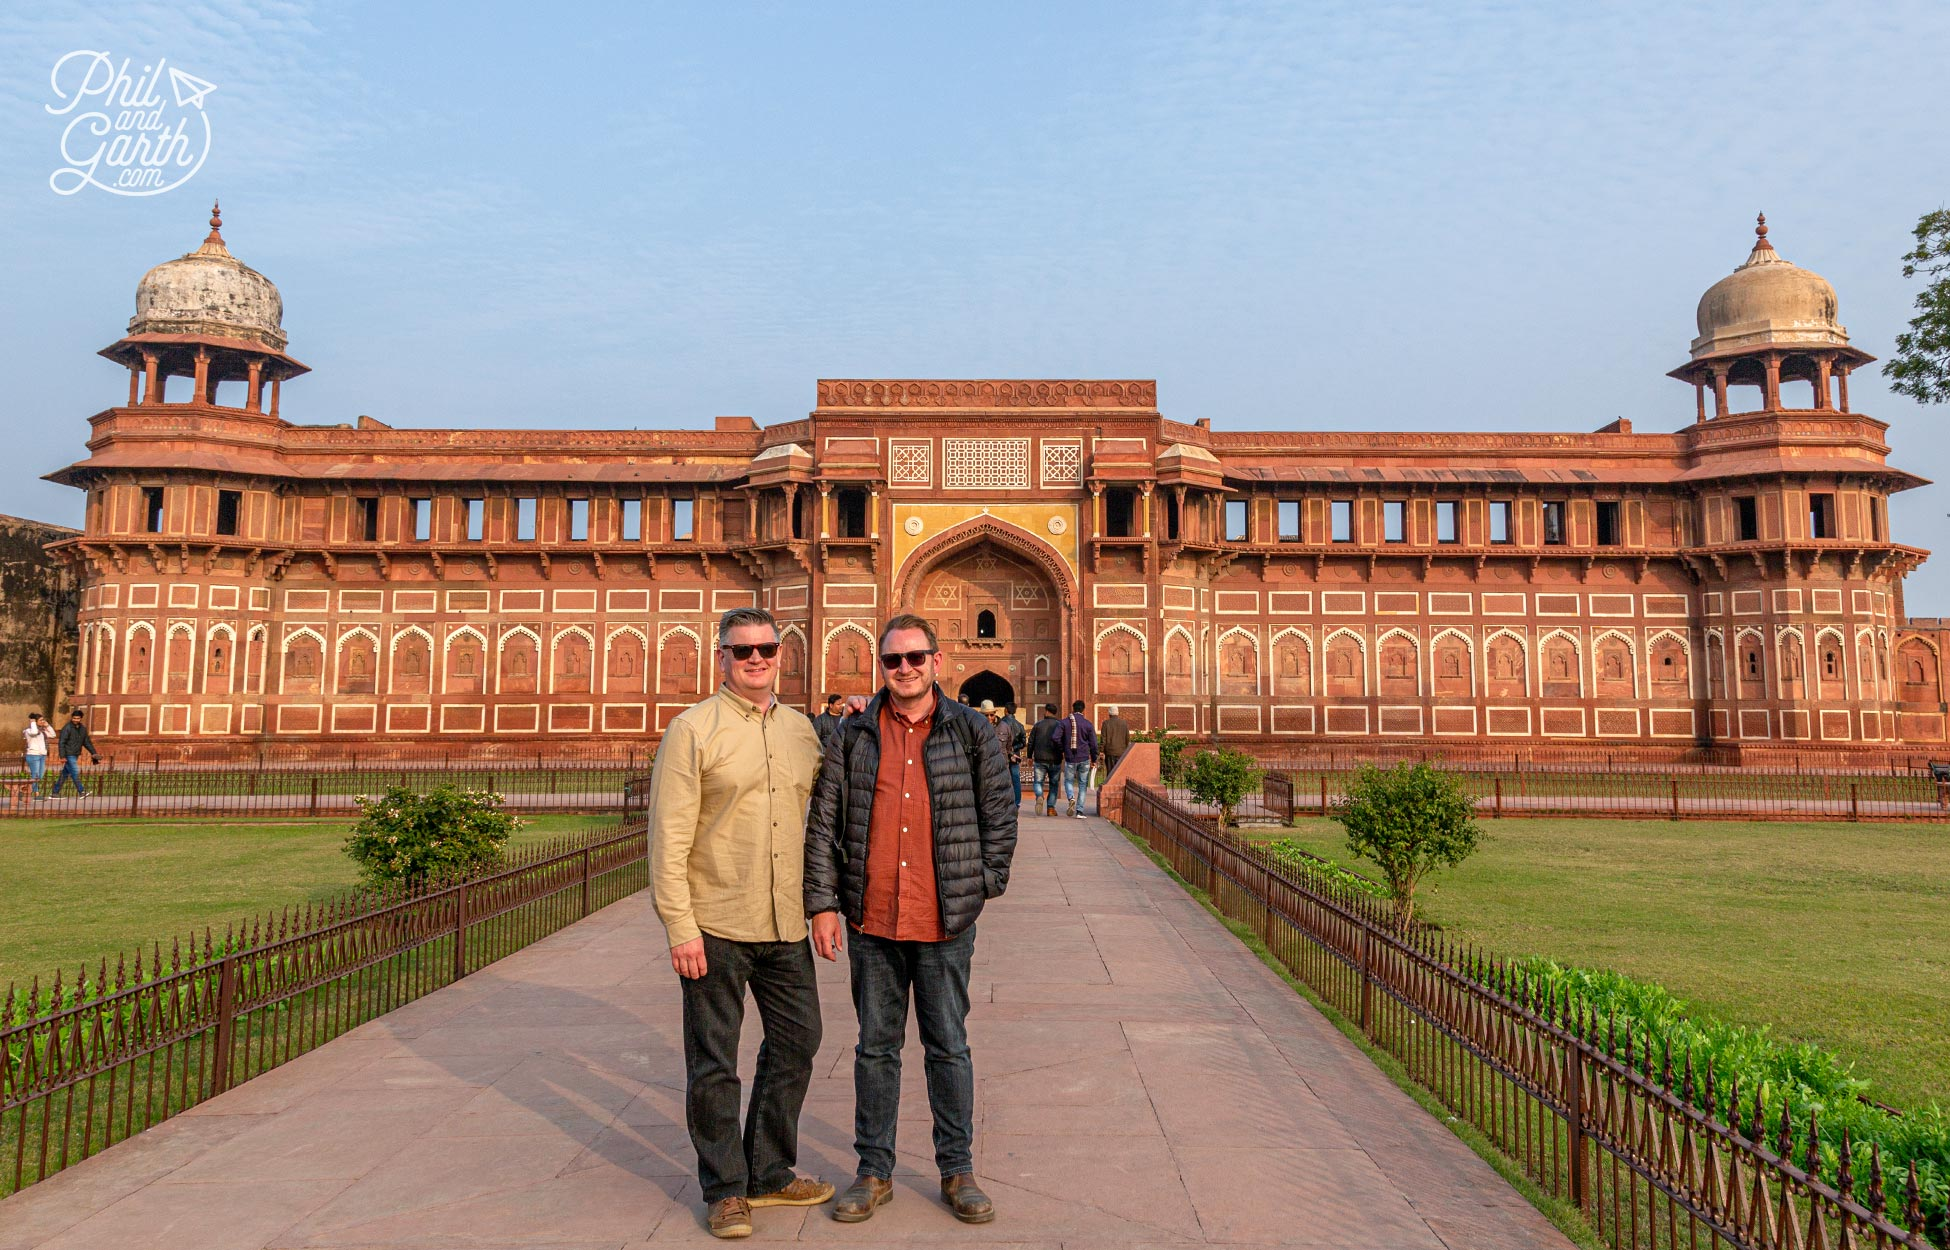 Phil and Garth outside The Jahangiri Palace - The women's quarters of the Royal household.